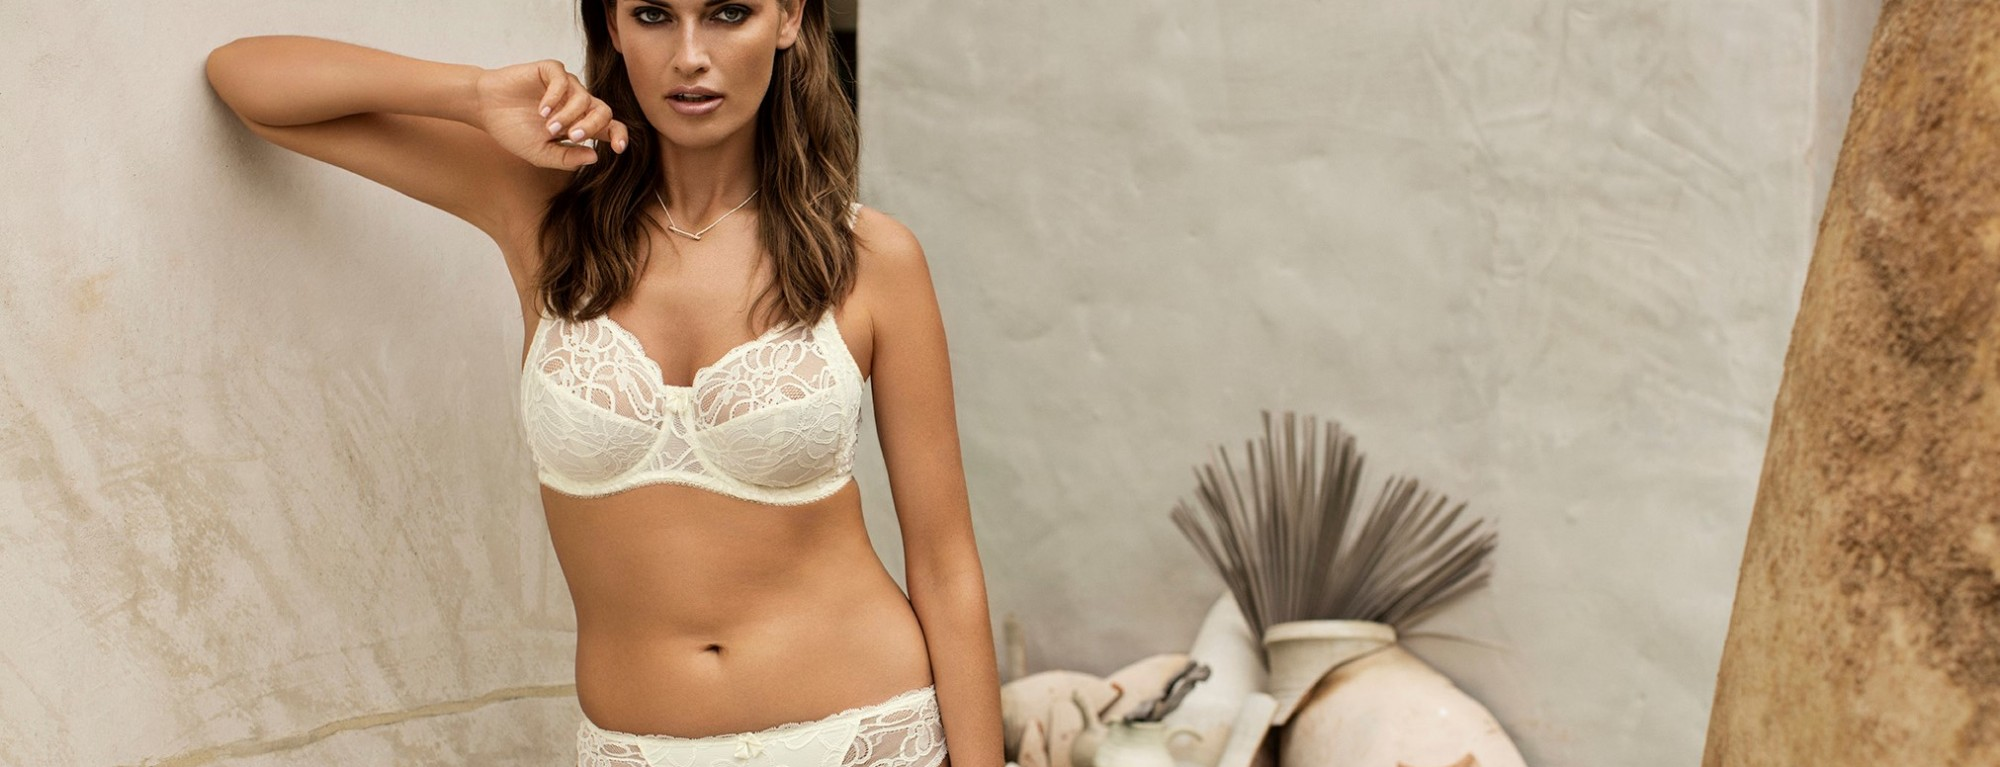 FANTASIE-LINGERIE-JACQUELINE-LACE-IVORY-UW-FULL-CUP-FL9401-THONG-FL9407-CONSUMER-WEB-SS17